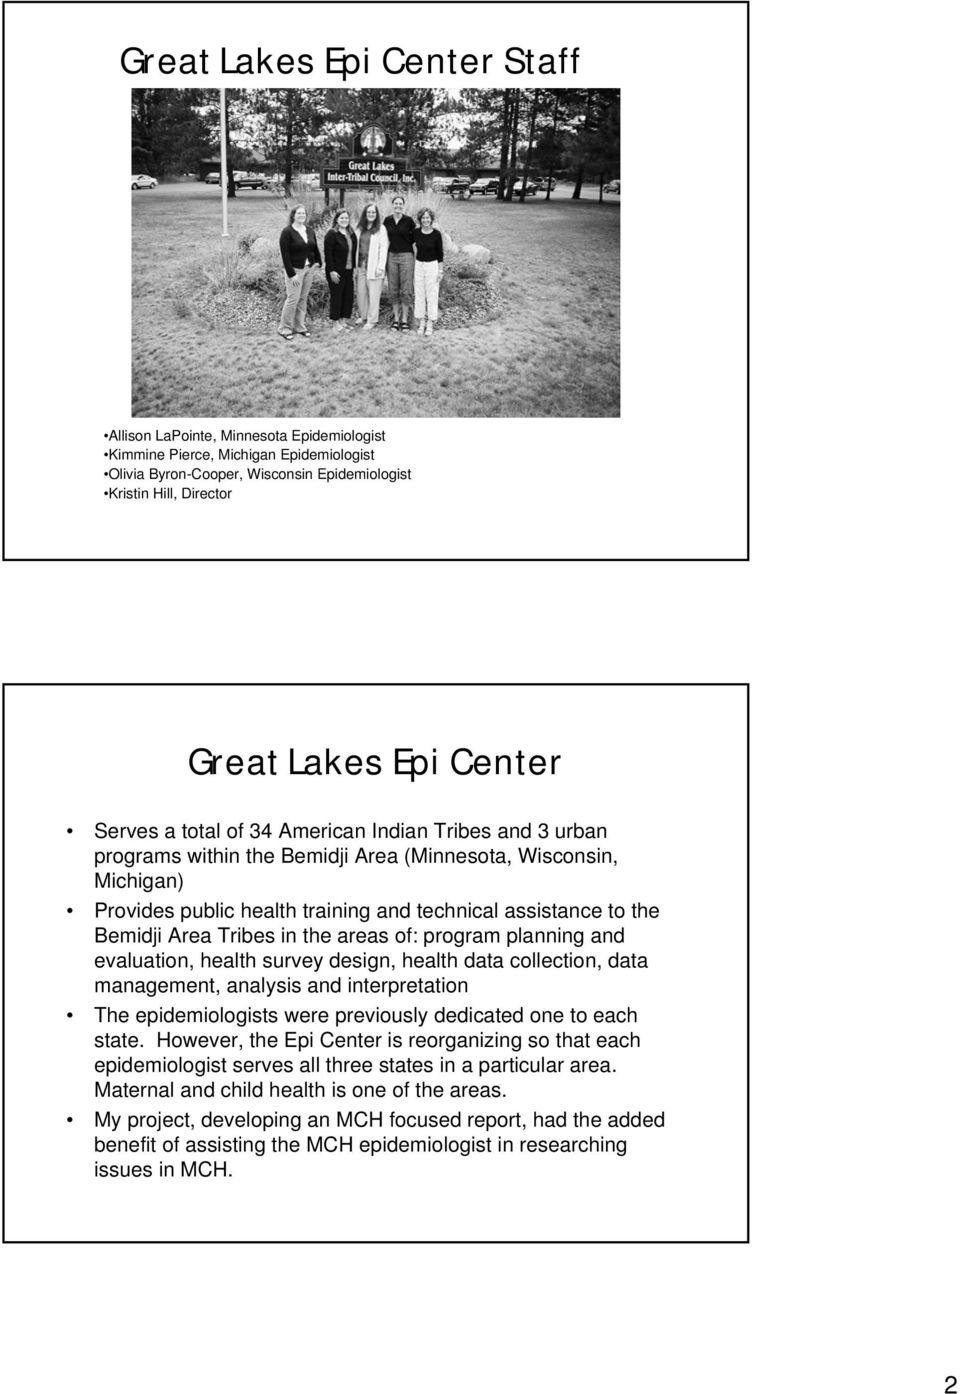 Bemidji Area Tribes in the areas of: program planning and evaluation, health survey design, health data collection, data management, analysis and interpretation The epidemiologists were previously